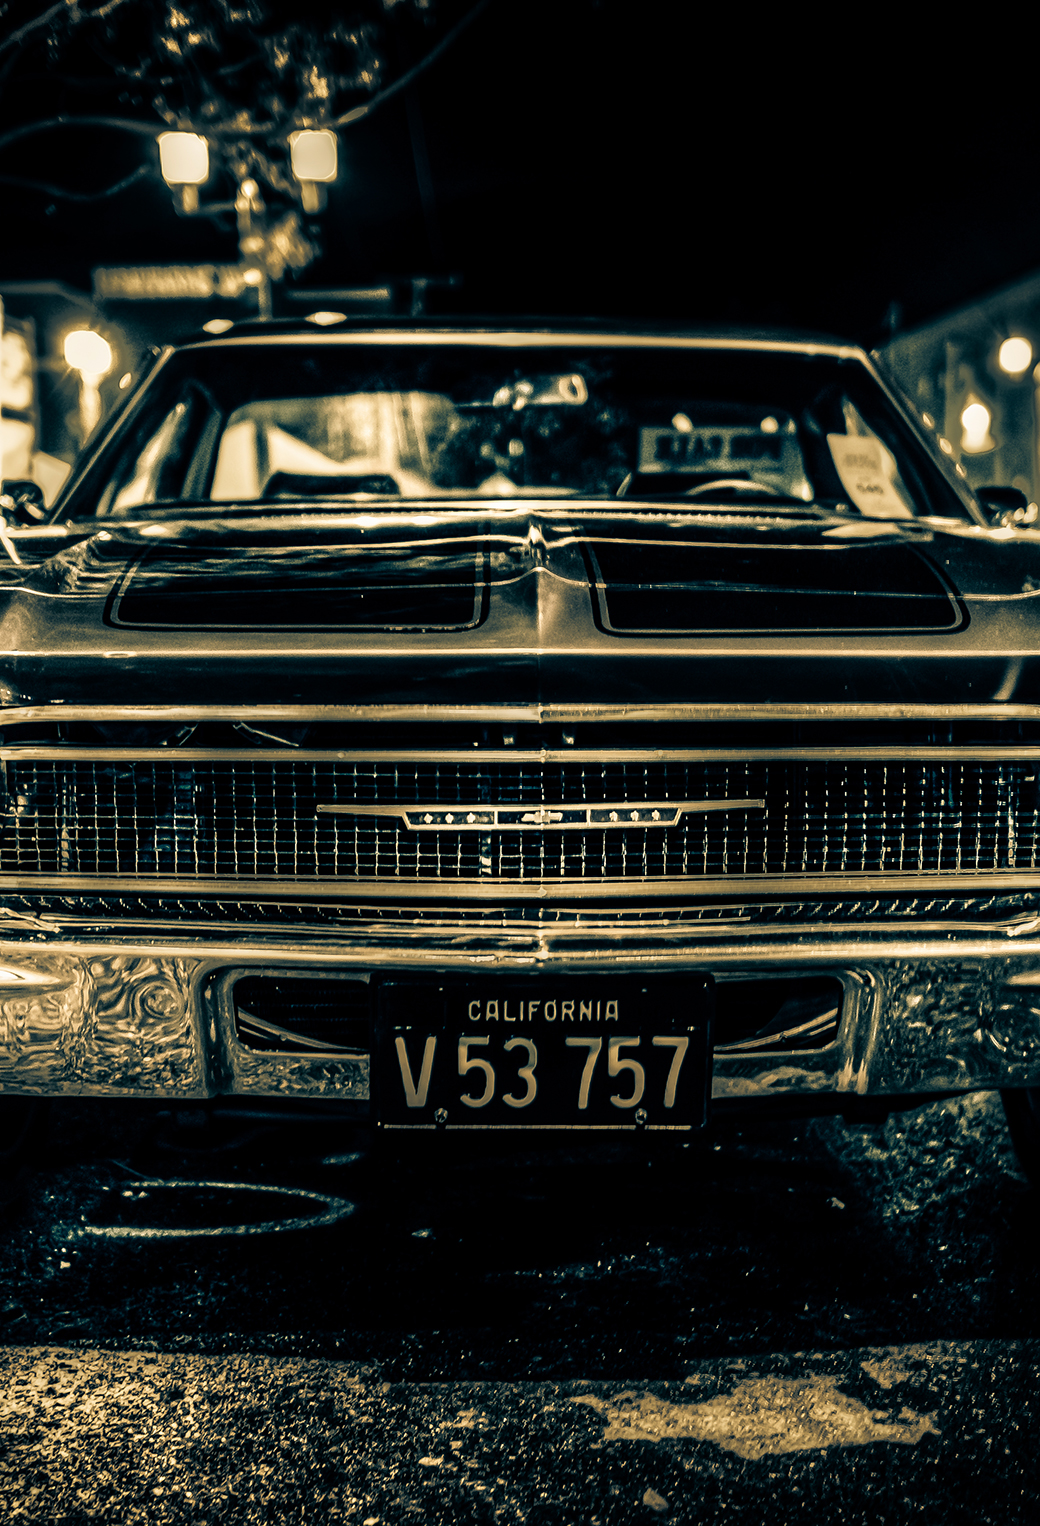 Vintage Chevrolet California 3Wallpapers iphone Parallax Vintage Chevrolet California